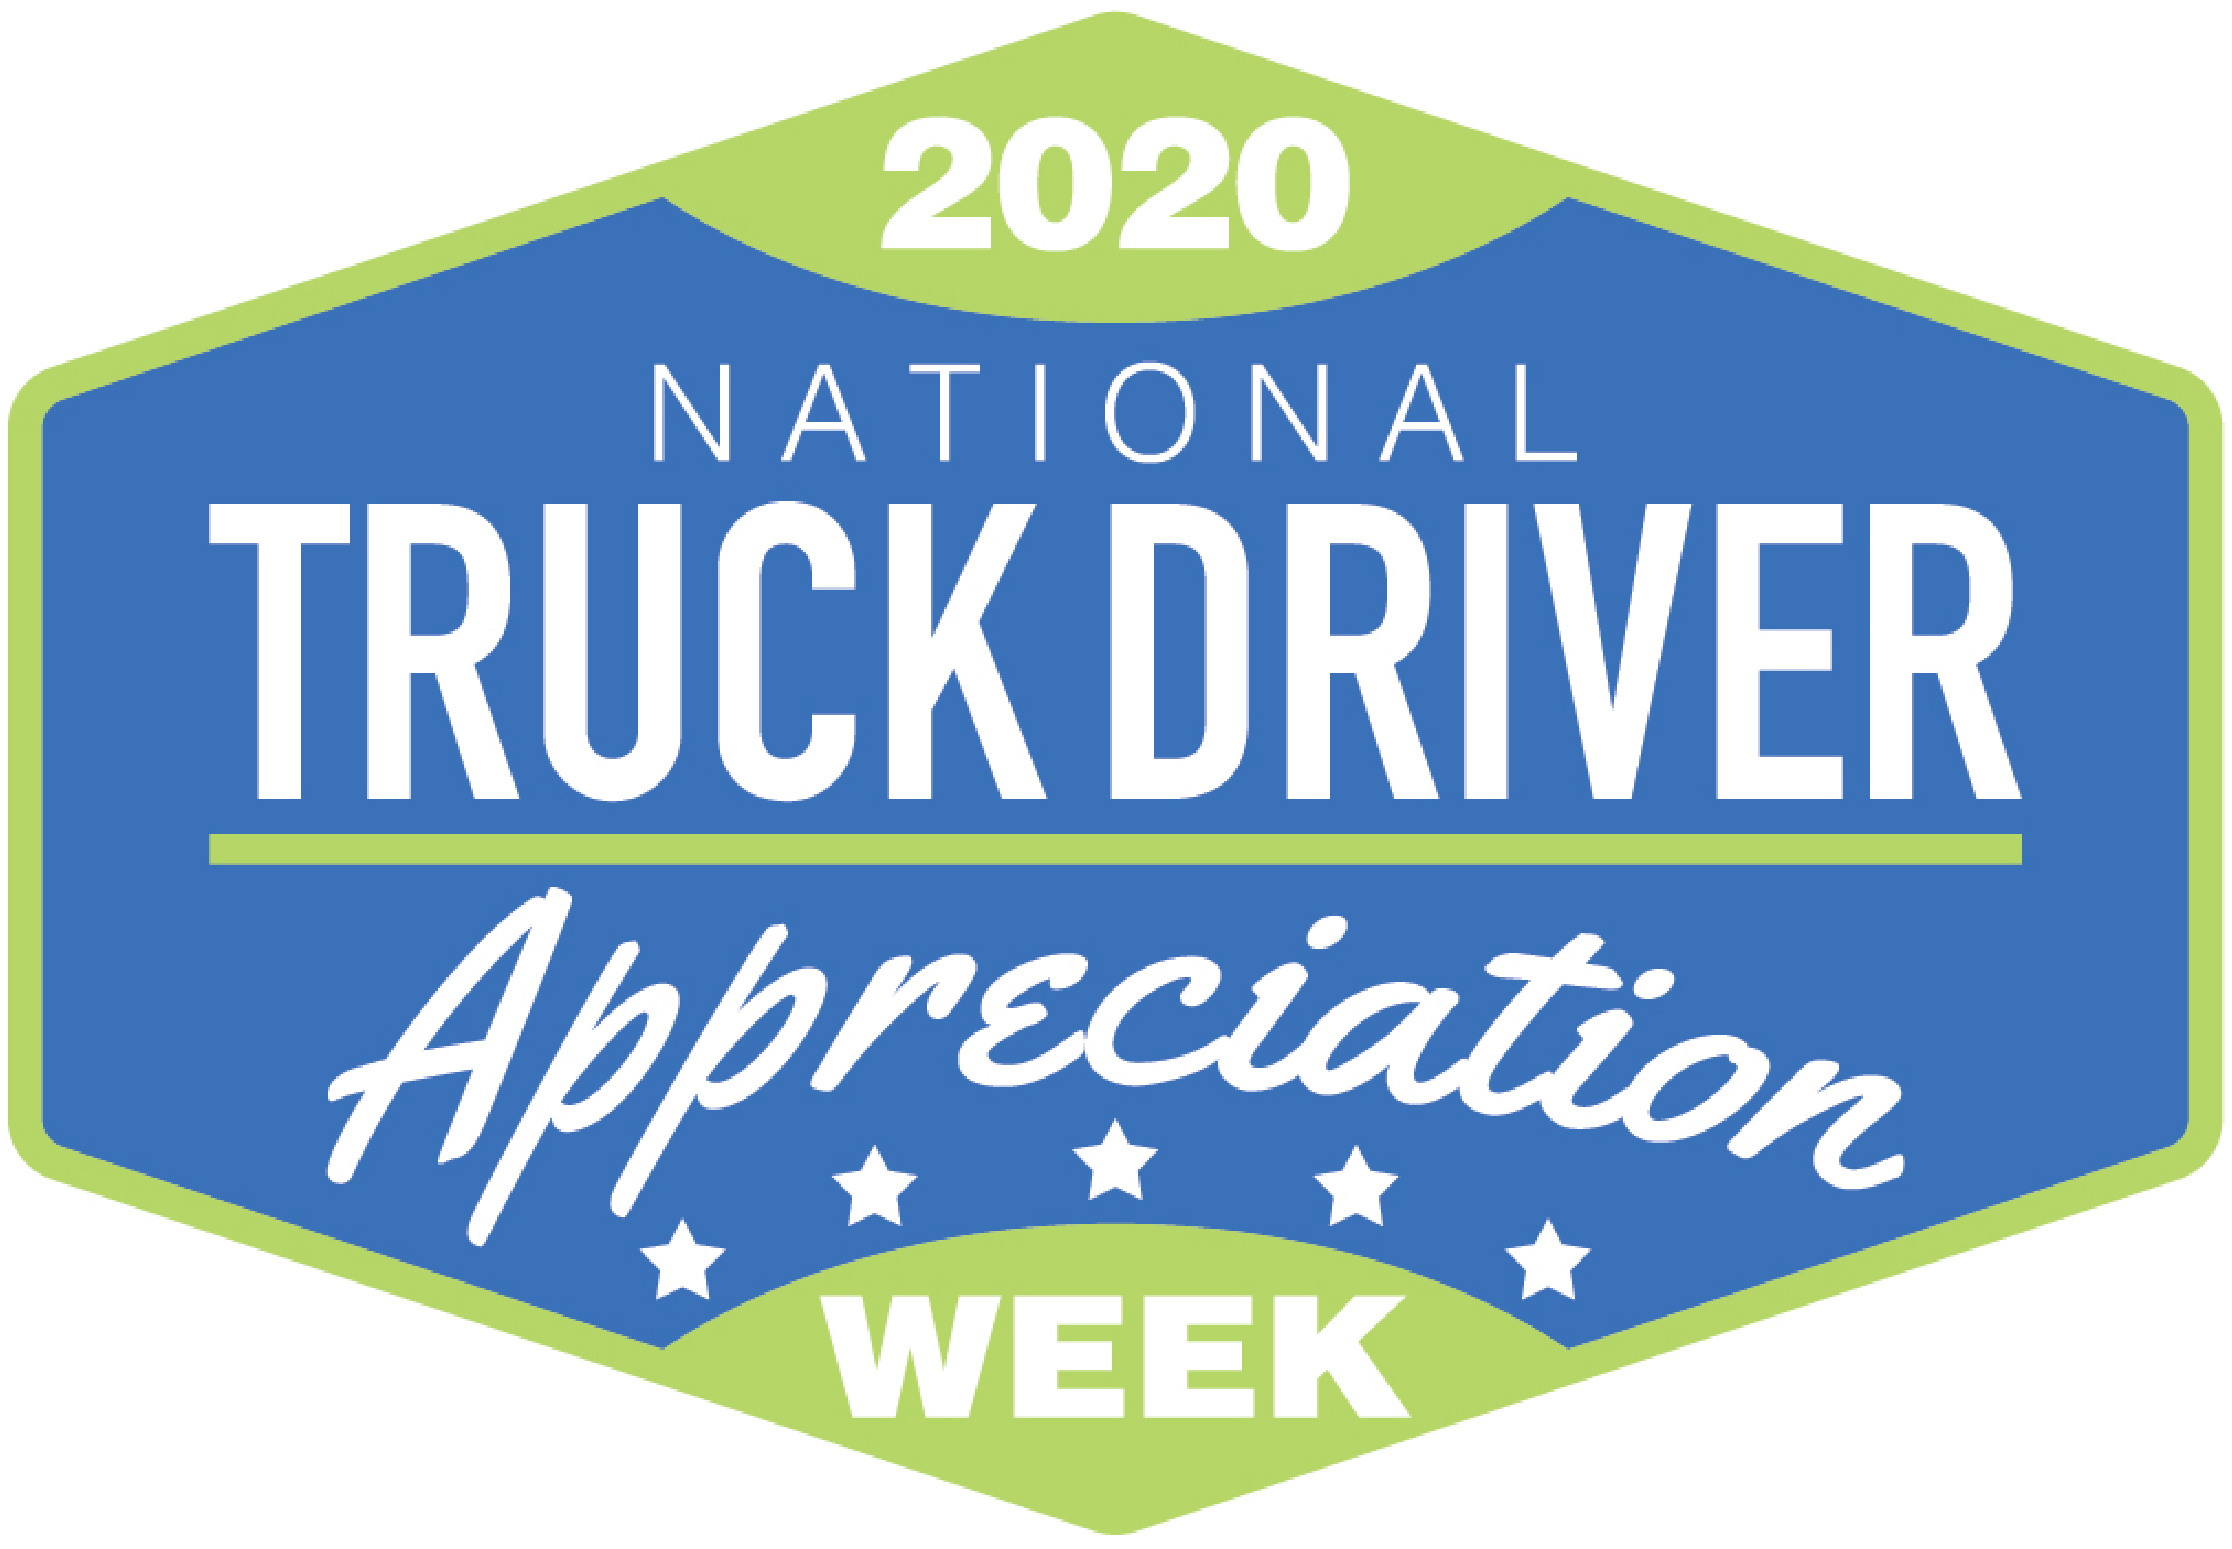 National Truck Driver Appreciation Week (NTDAW) 2020